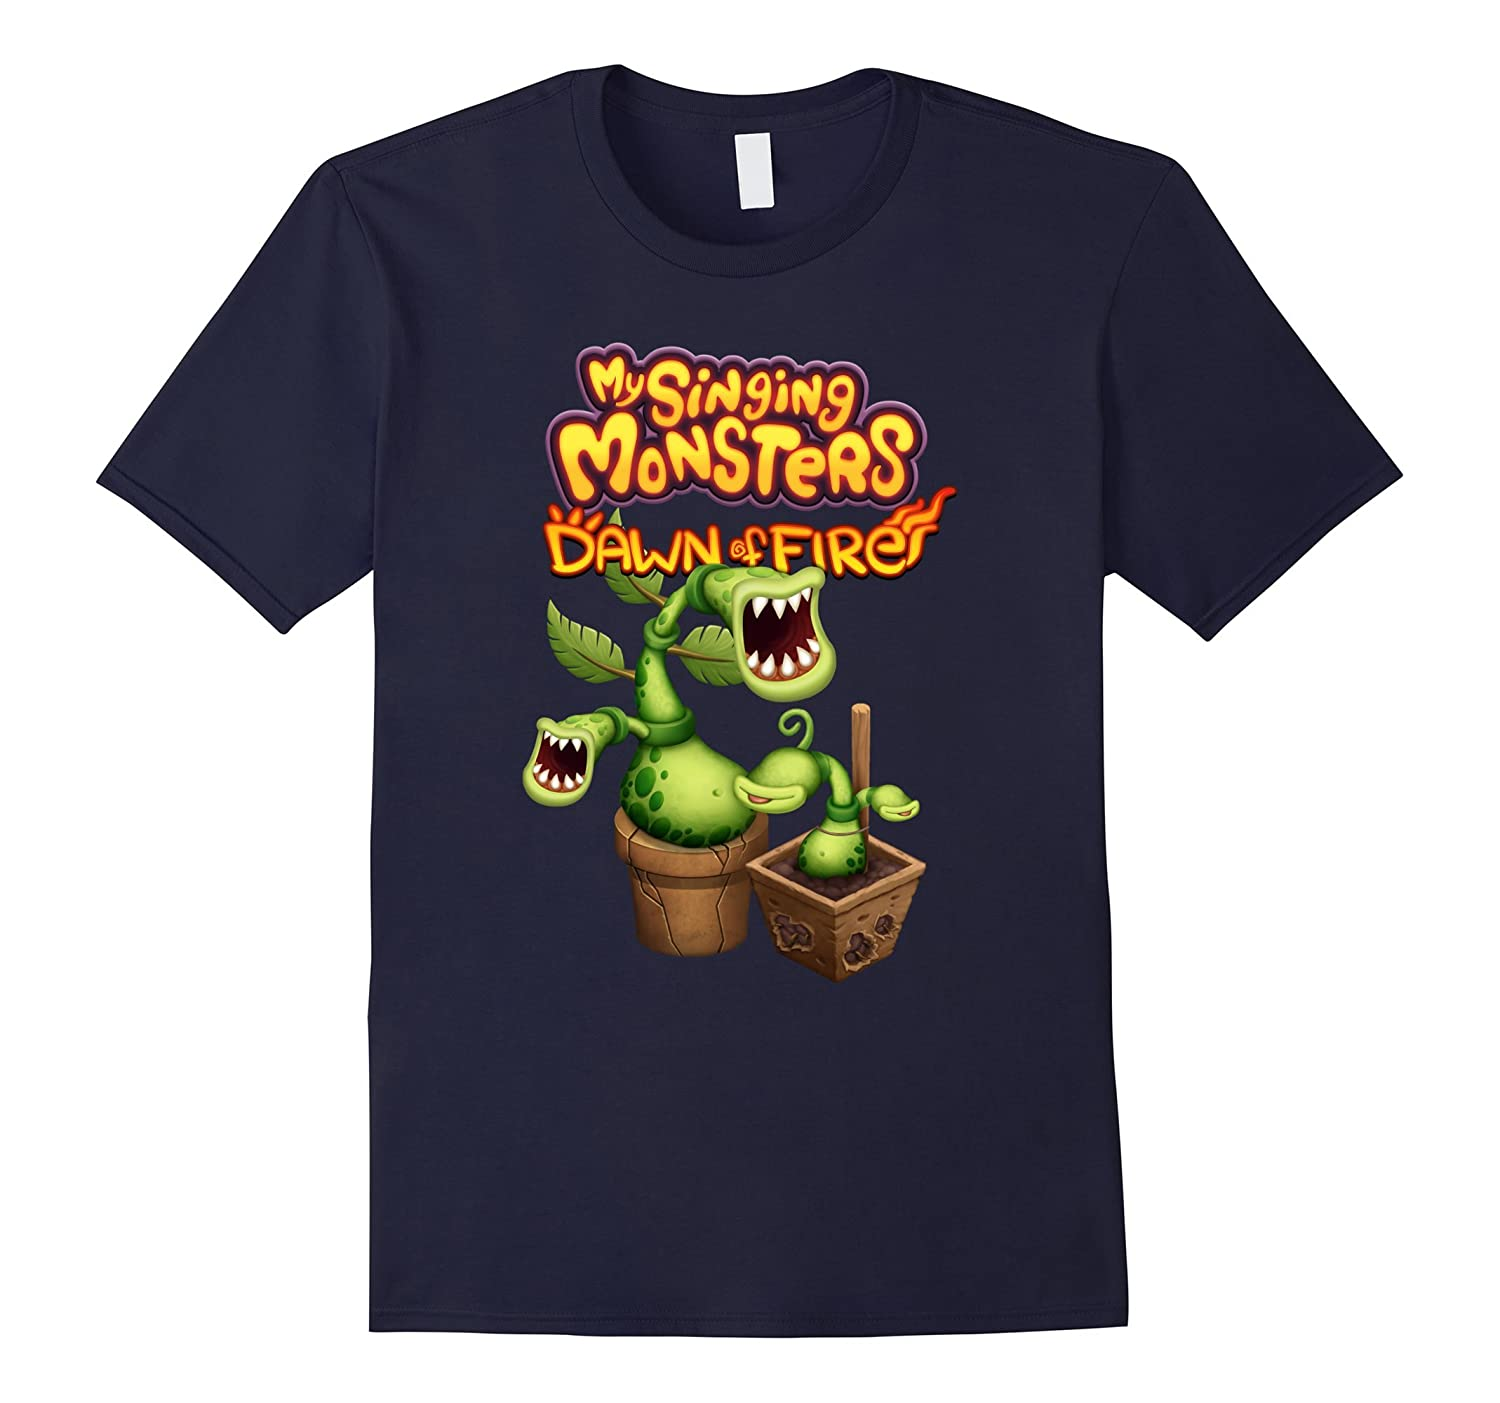 My Singing Monsters Dawn Of Fire - Potbelly  Baby T-shirt-CD